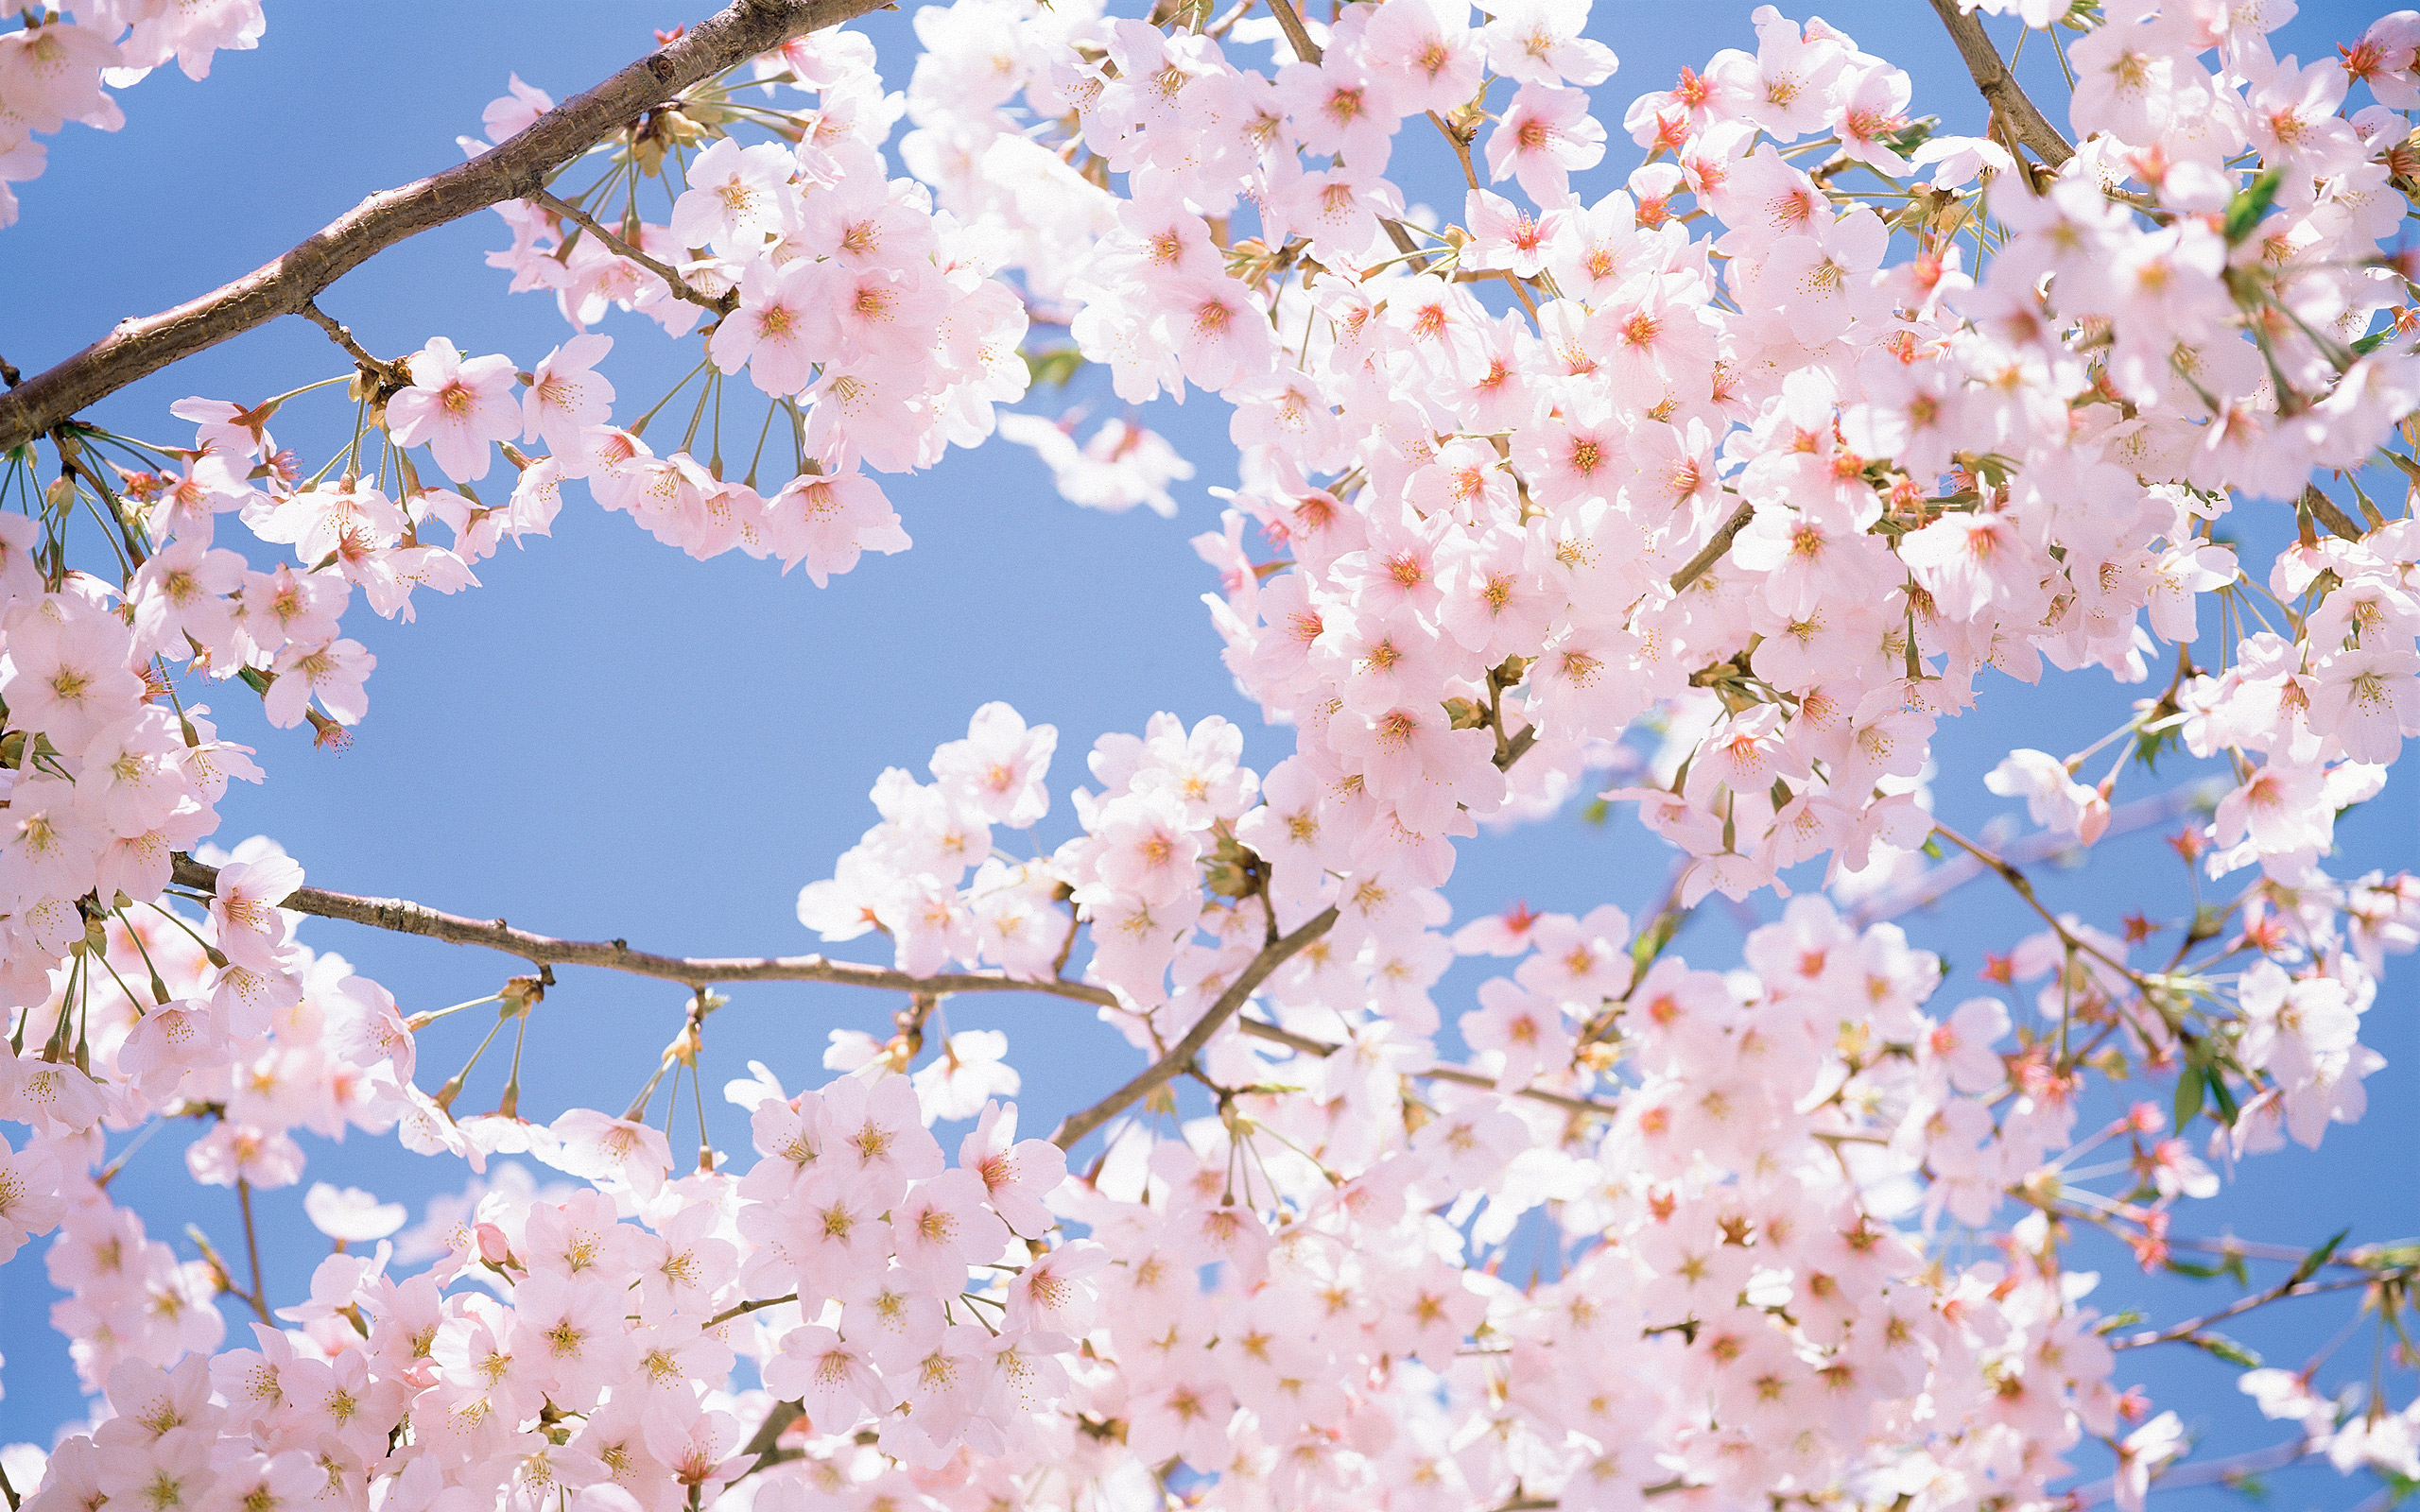 Cherry Blossom Wallpaper 2560x1600 42441